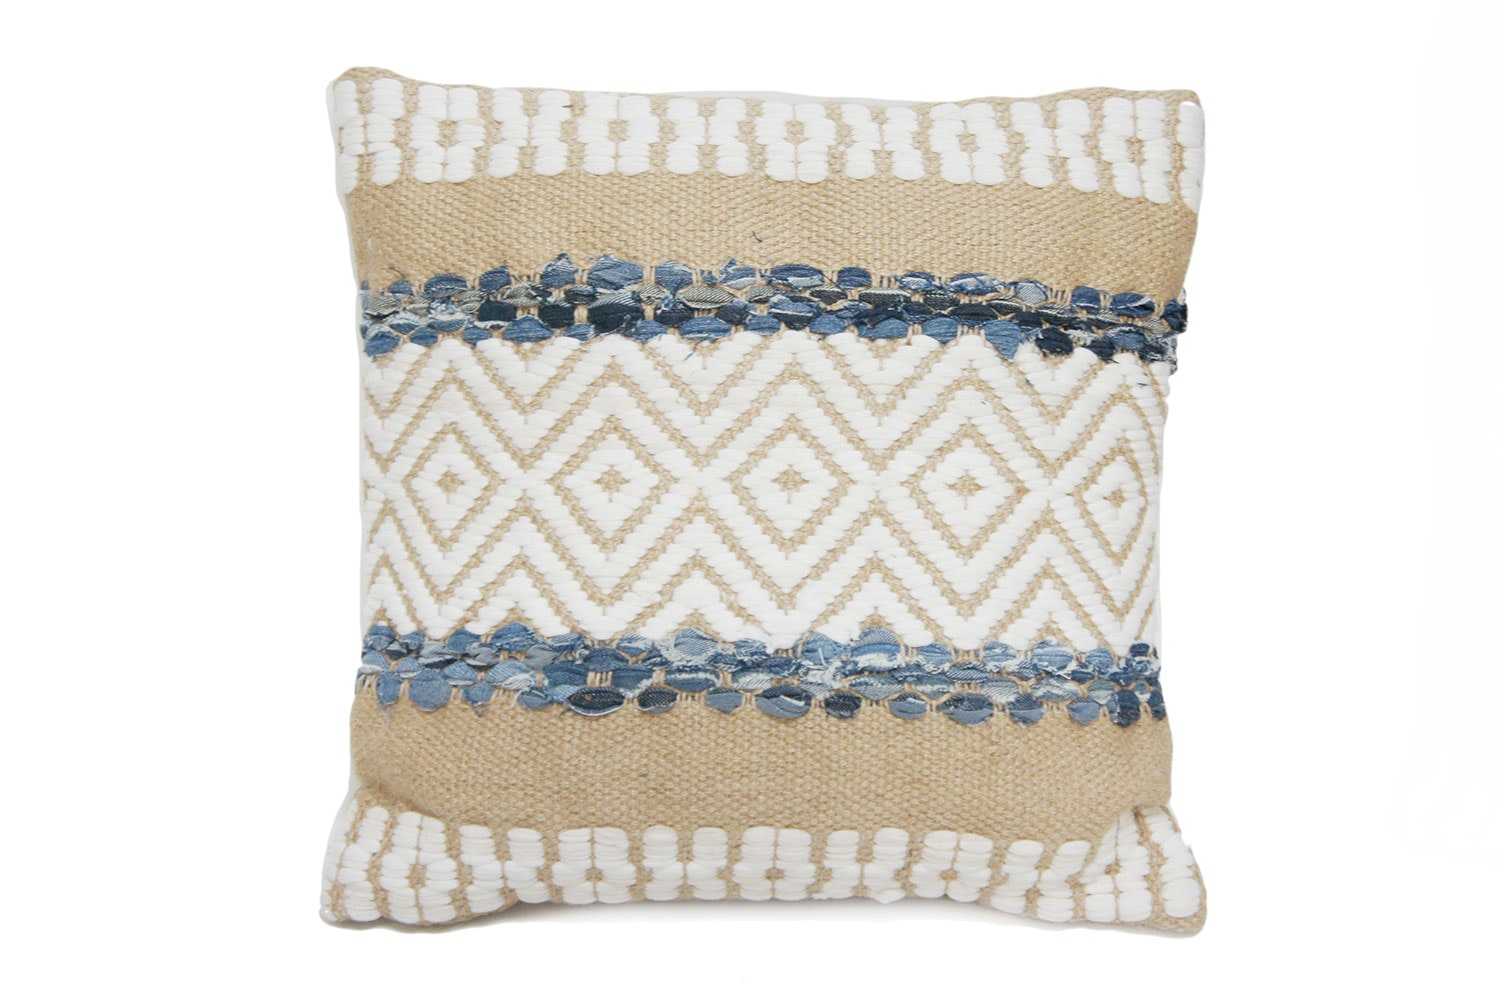 Sahi Square Cushion by Stoneleigh and Robertson